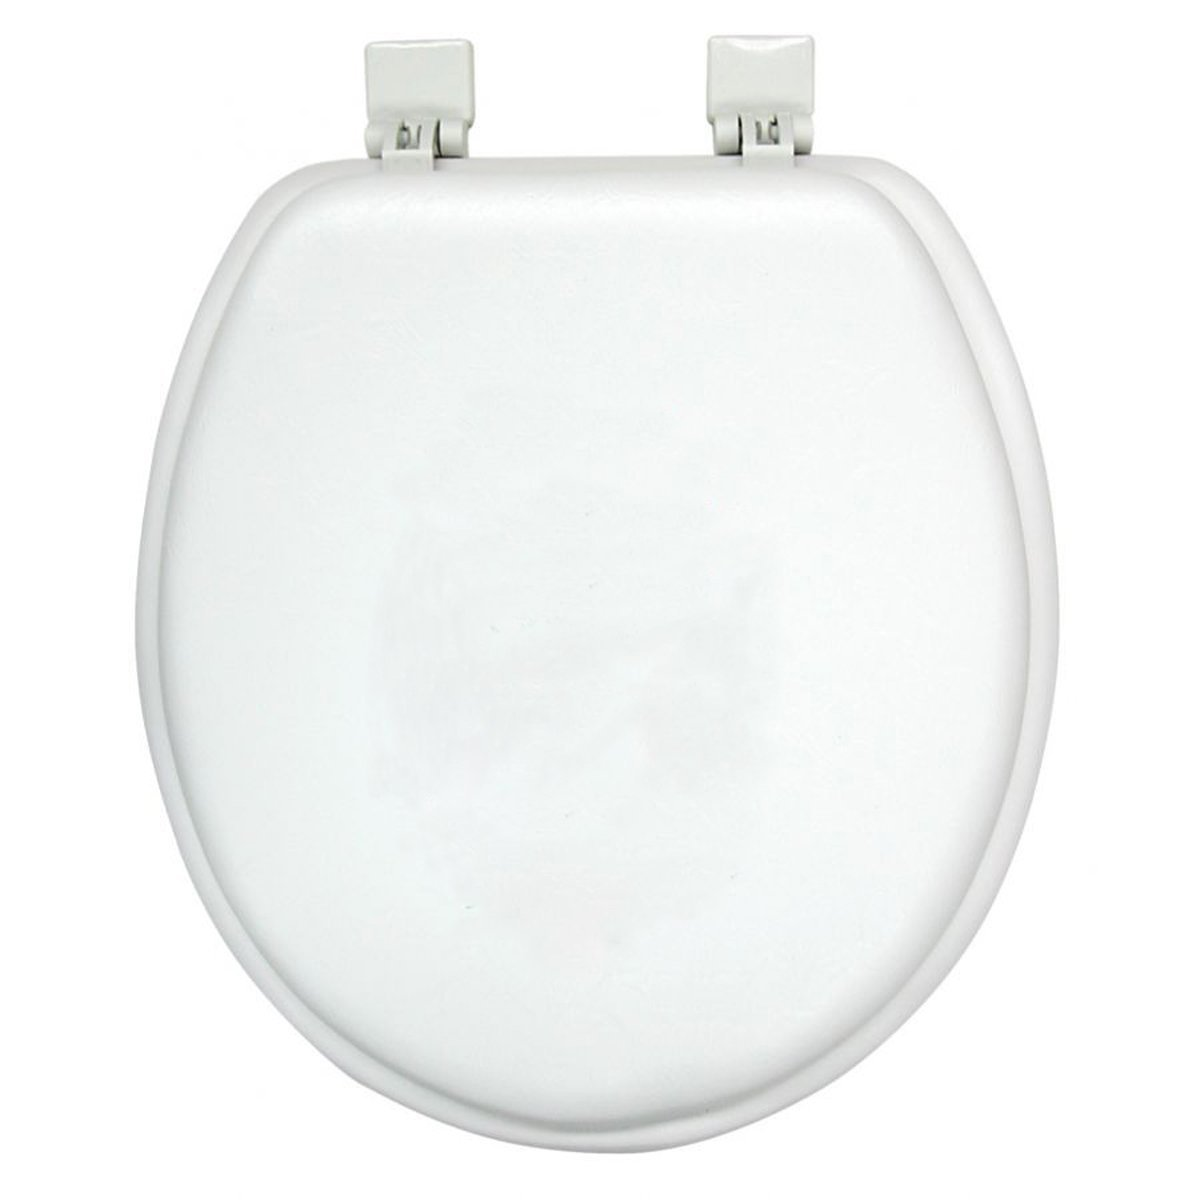 Ginsey Home Solutions Soft Toilet Seat - Padded for Extra Comfort - For Standard Toilets - Includes All Necessary Components for Installation - White by Ginsey